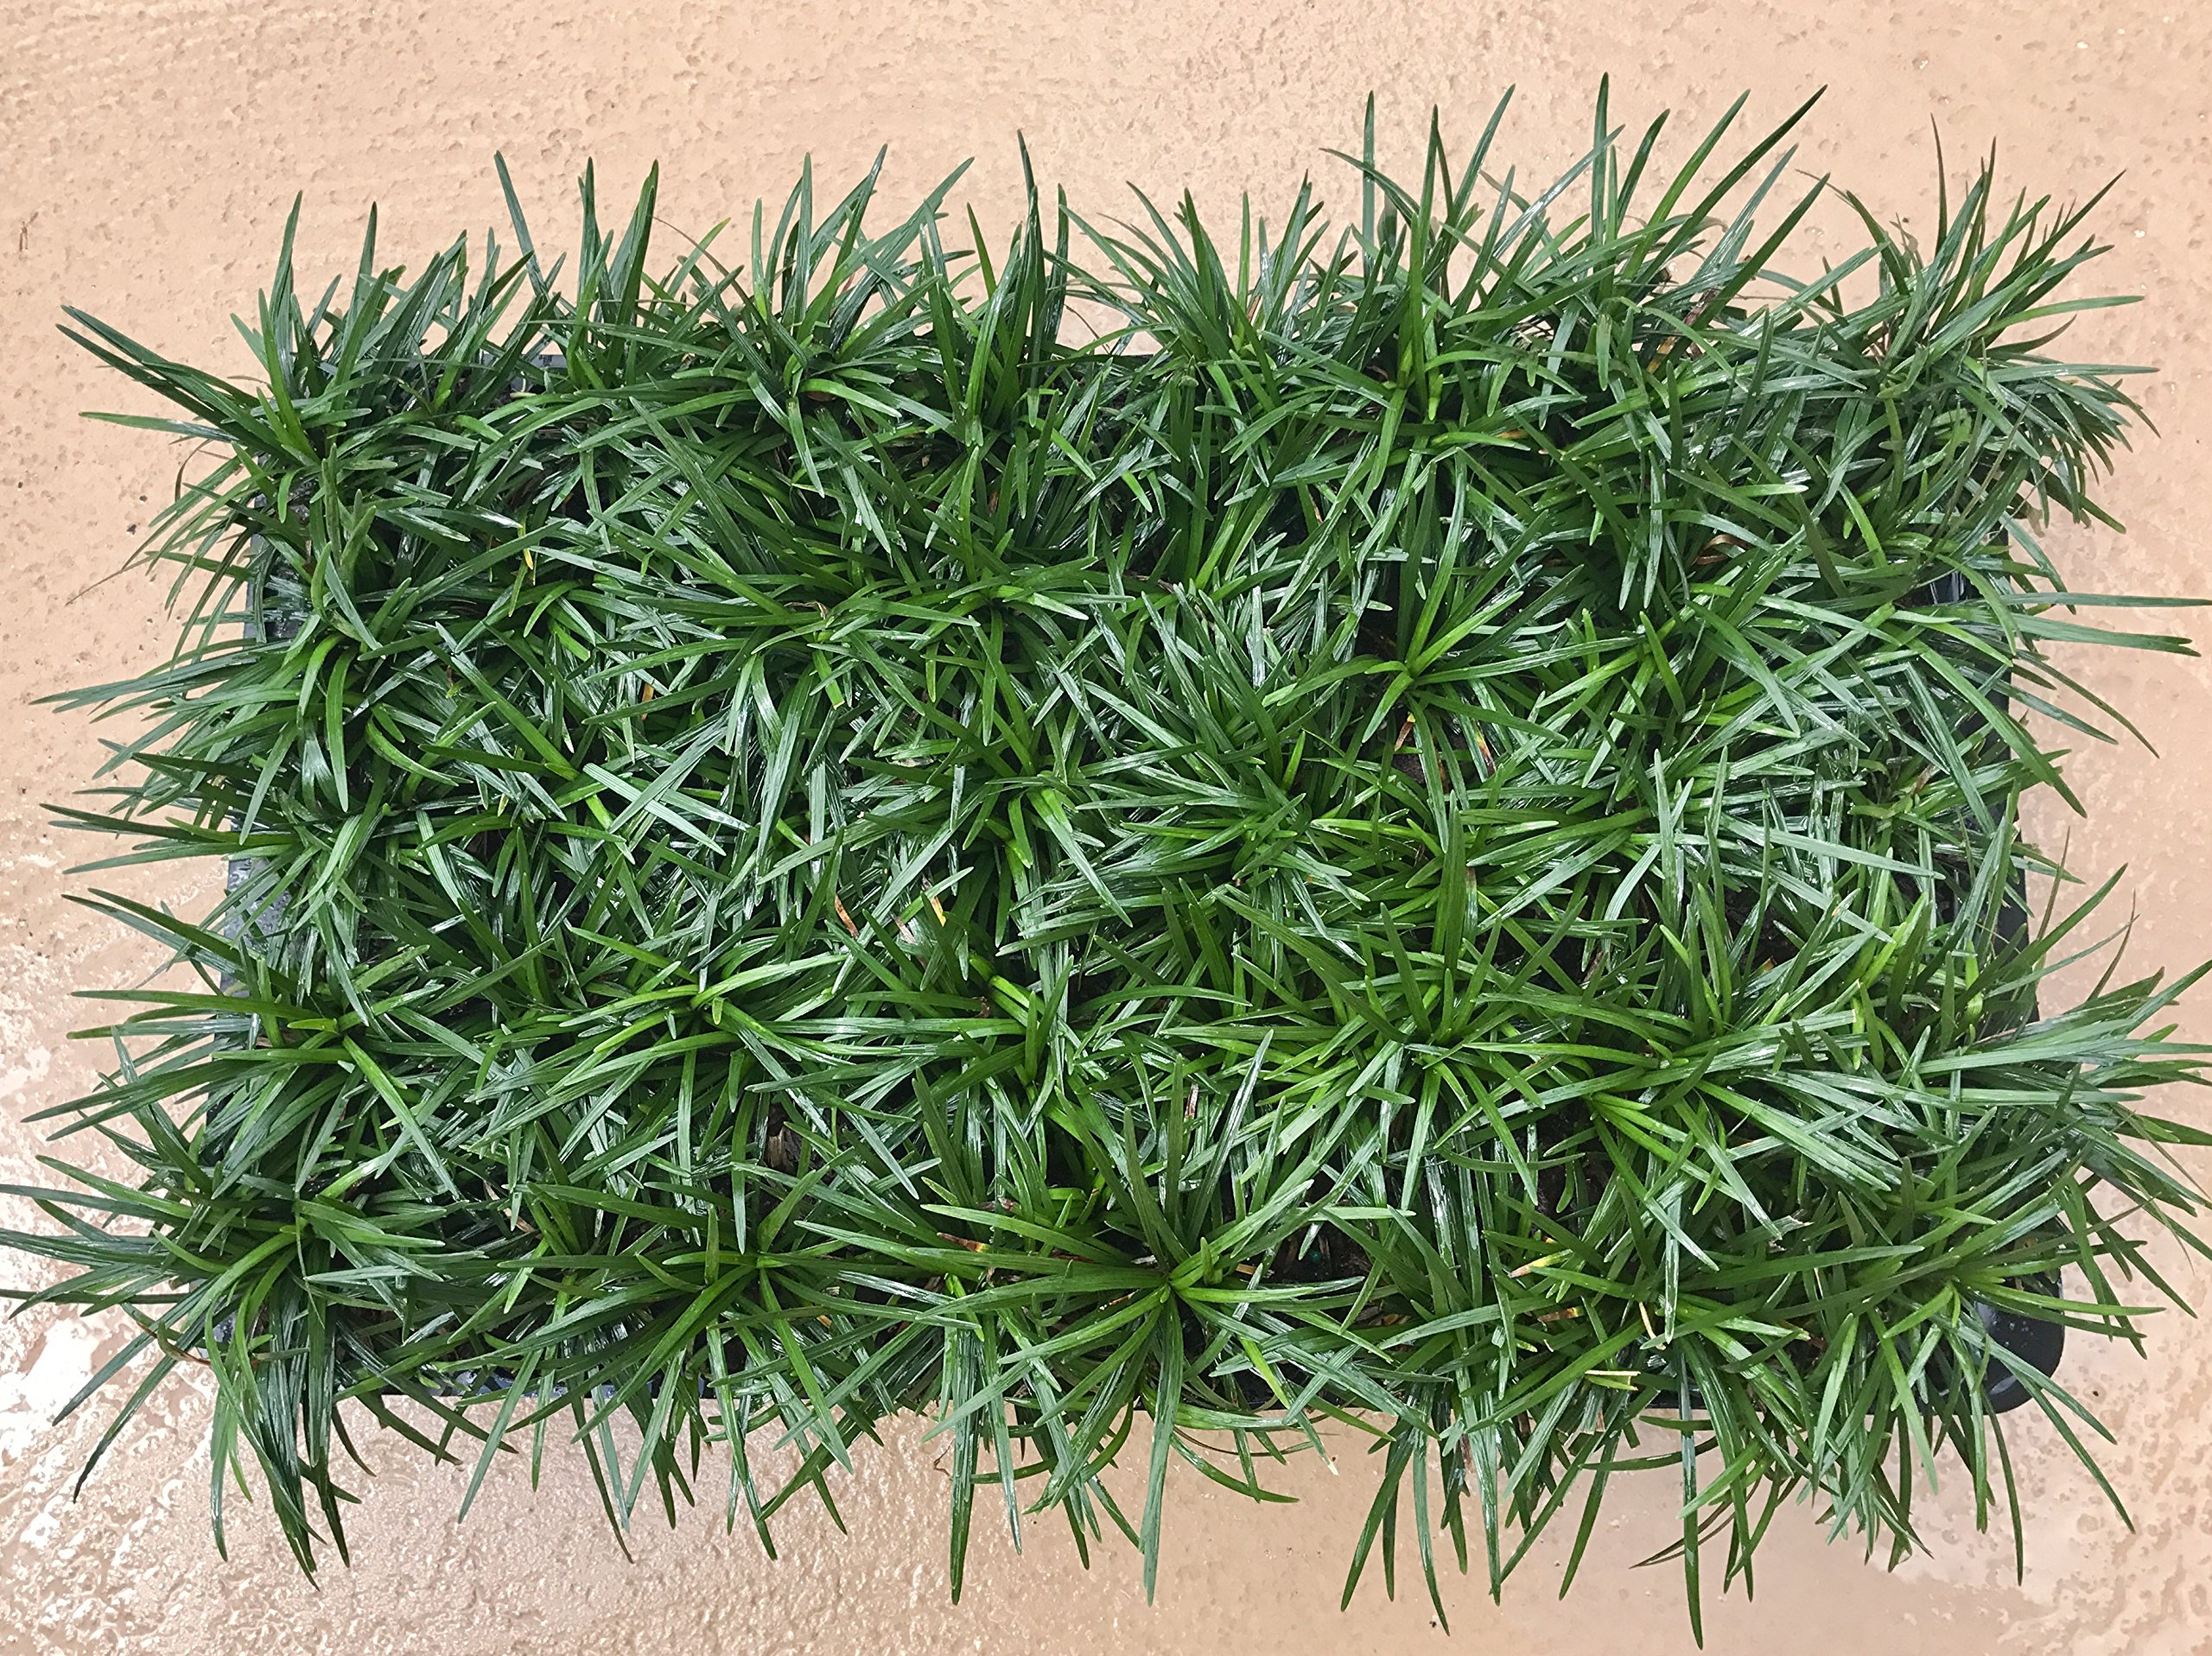 Dwarf Mondo Grass Qty 72 Live Plants Shade Loving Groundcover by Florida Foliage (Image #2)